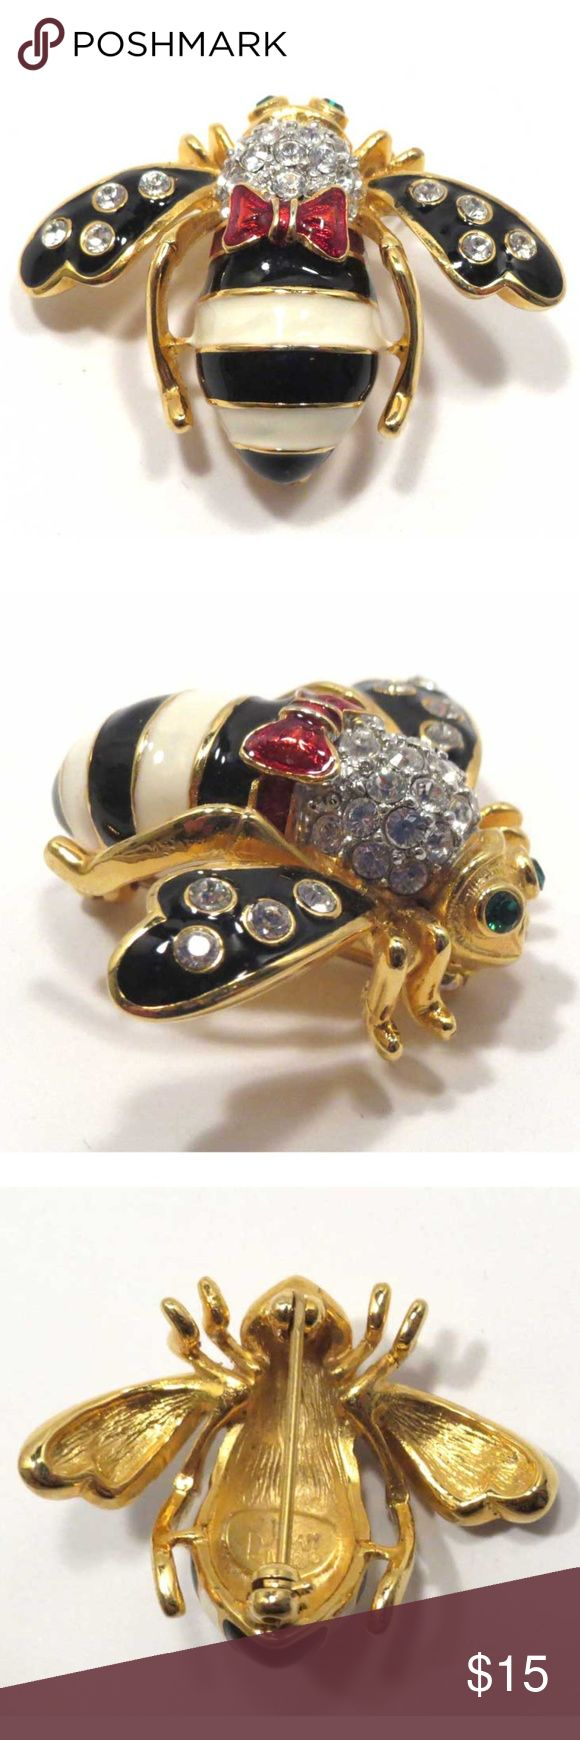 "Joan Rivers Bumblebee Pin - Striped Enamel Body Joan Rivers bumblebee pin with a striped enamel body, clear rhinestones on black enamel wings, pave rhinestone head, green rhinestone eyes.  Sports a red bow.  Measures about 1-1/2"" x 1-1/8"".   Good condition with no damage or missing stones.  (549) Jewelry Brooches"